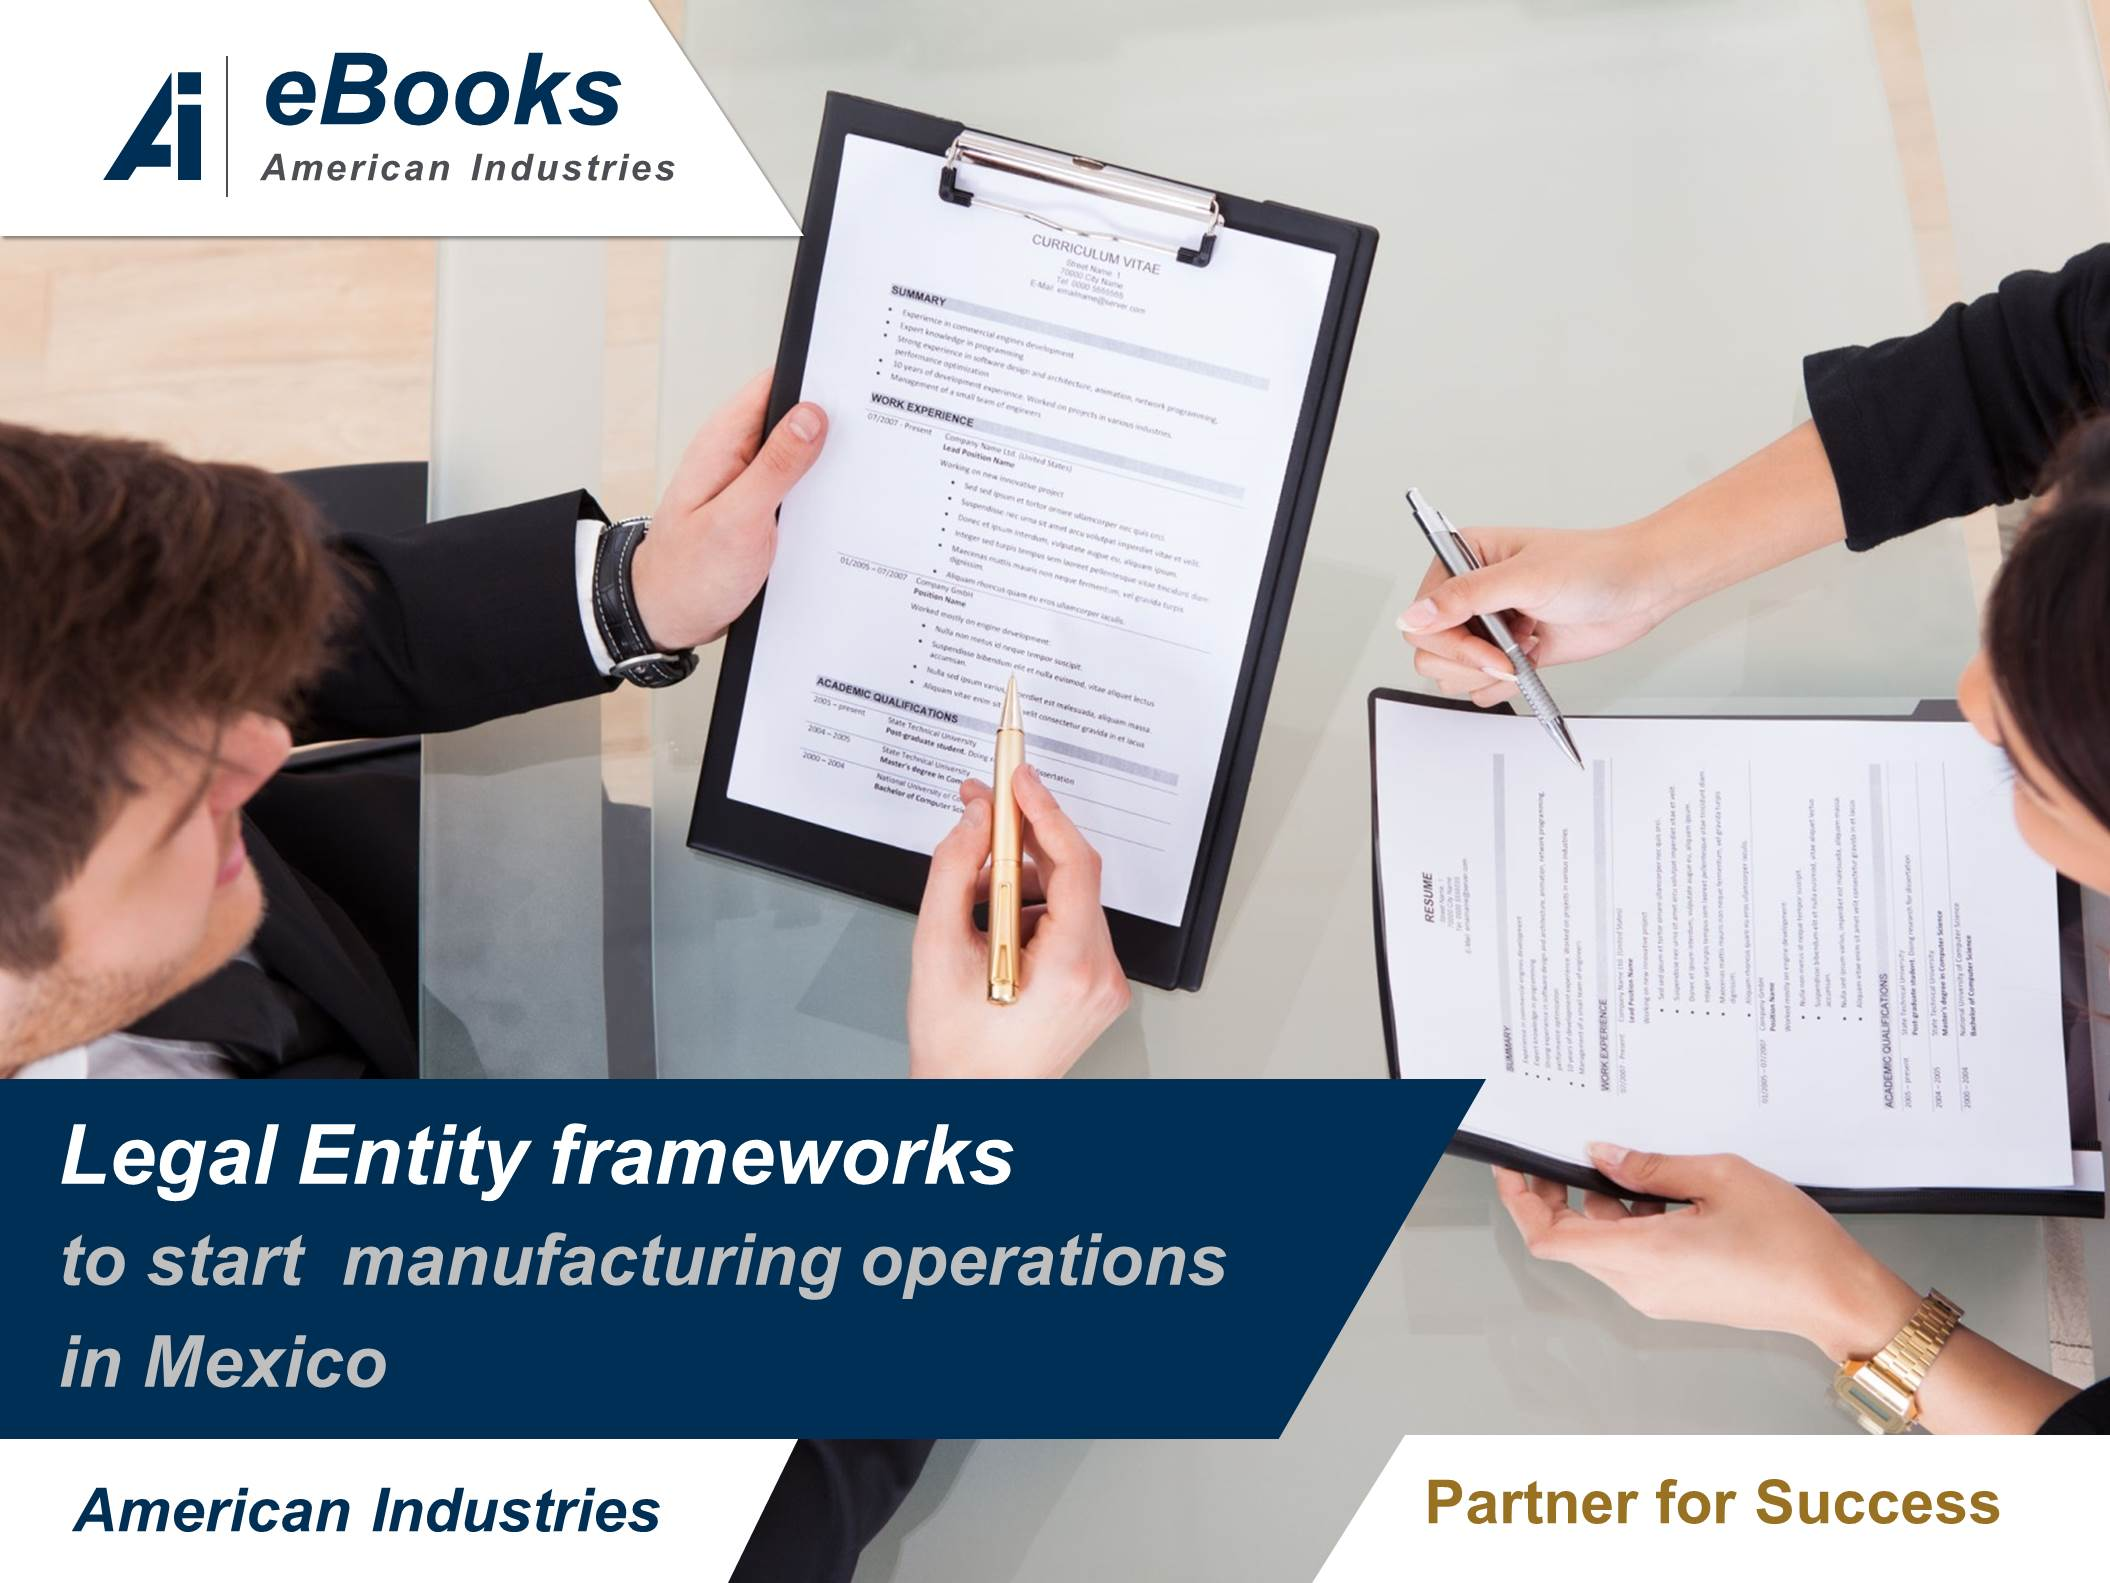 Legal entity frameworks to start manufacturing operations in Mexico